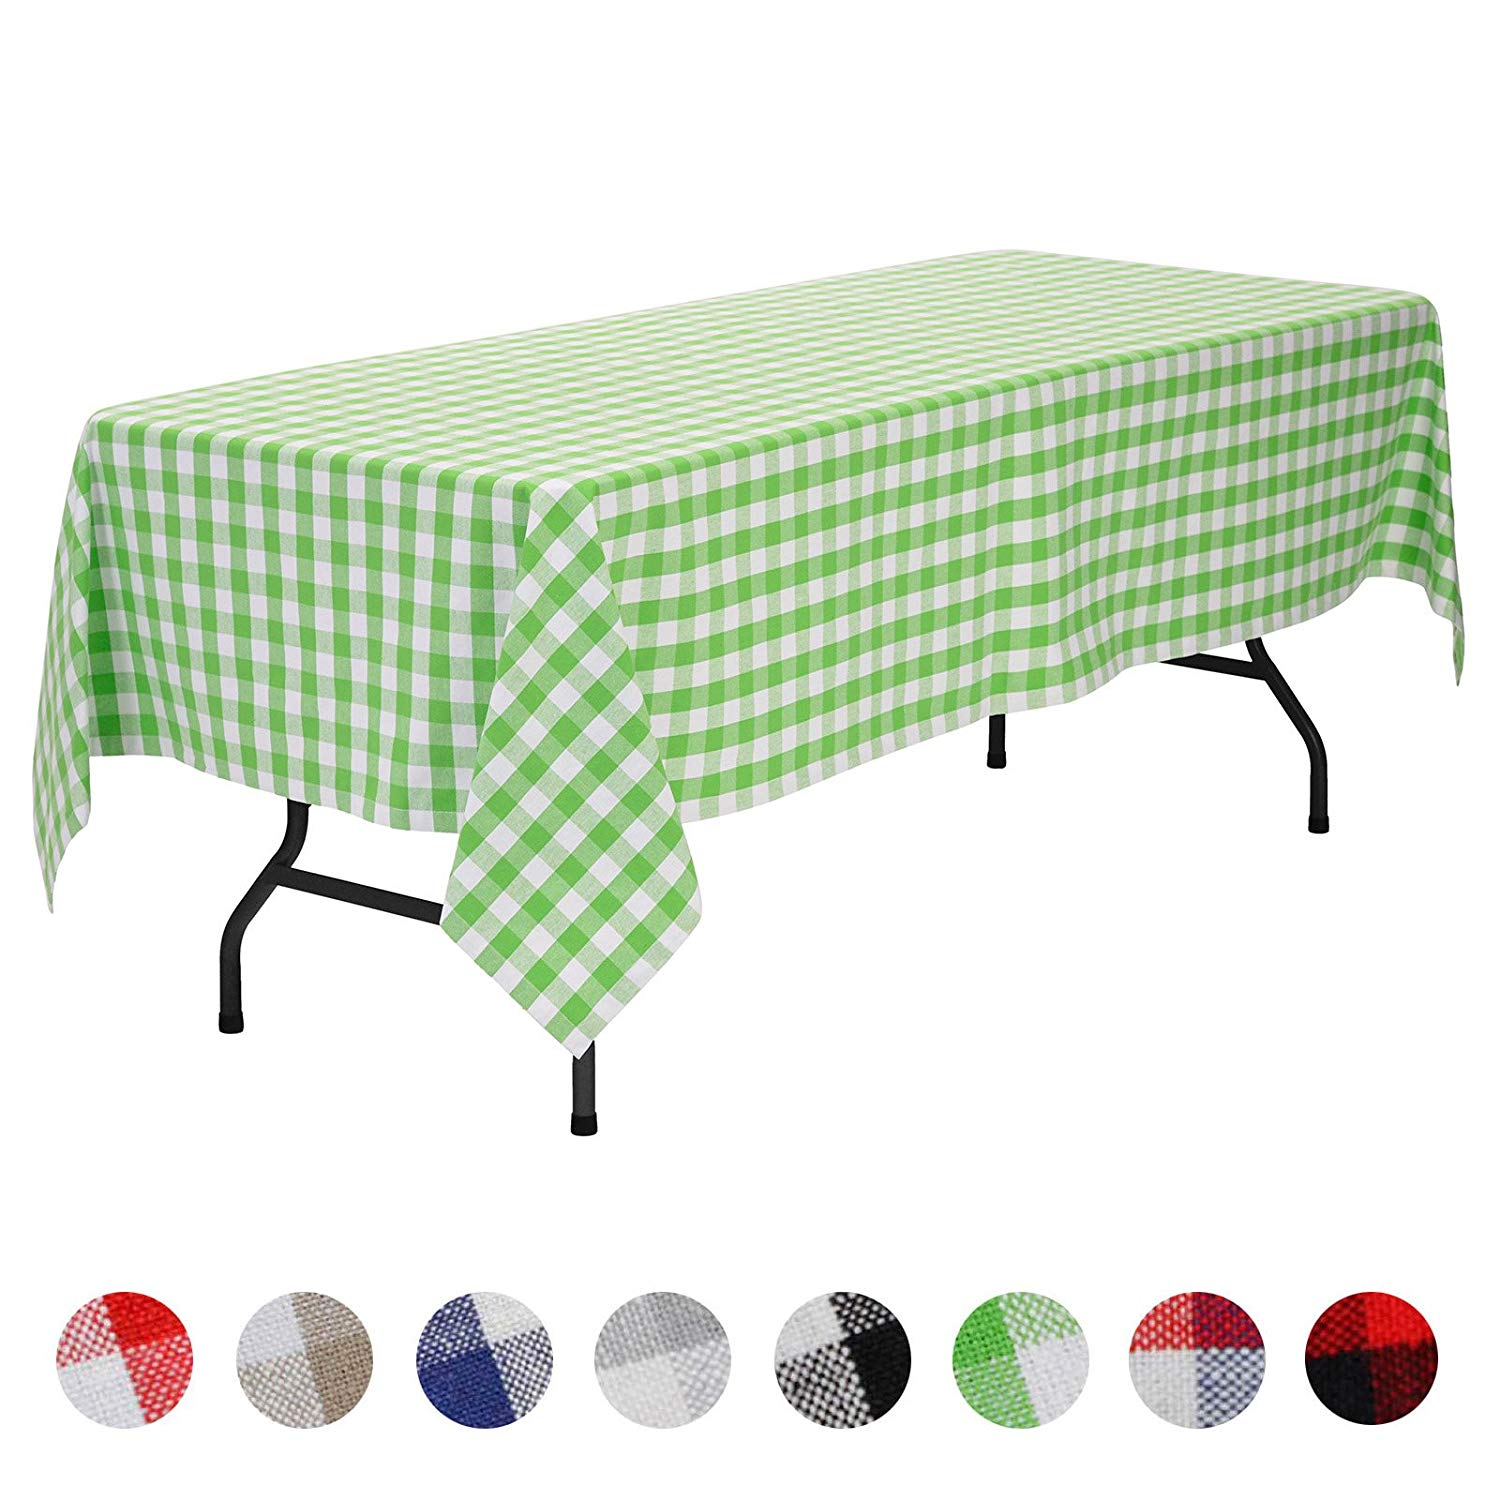 veeyoo rectangular plaid check tablecloth gingham accent table cotton for home kitchen party indoor outdoor use inch seats people koncept lighting bunnings swing set diy coffee